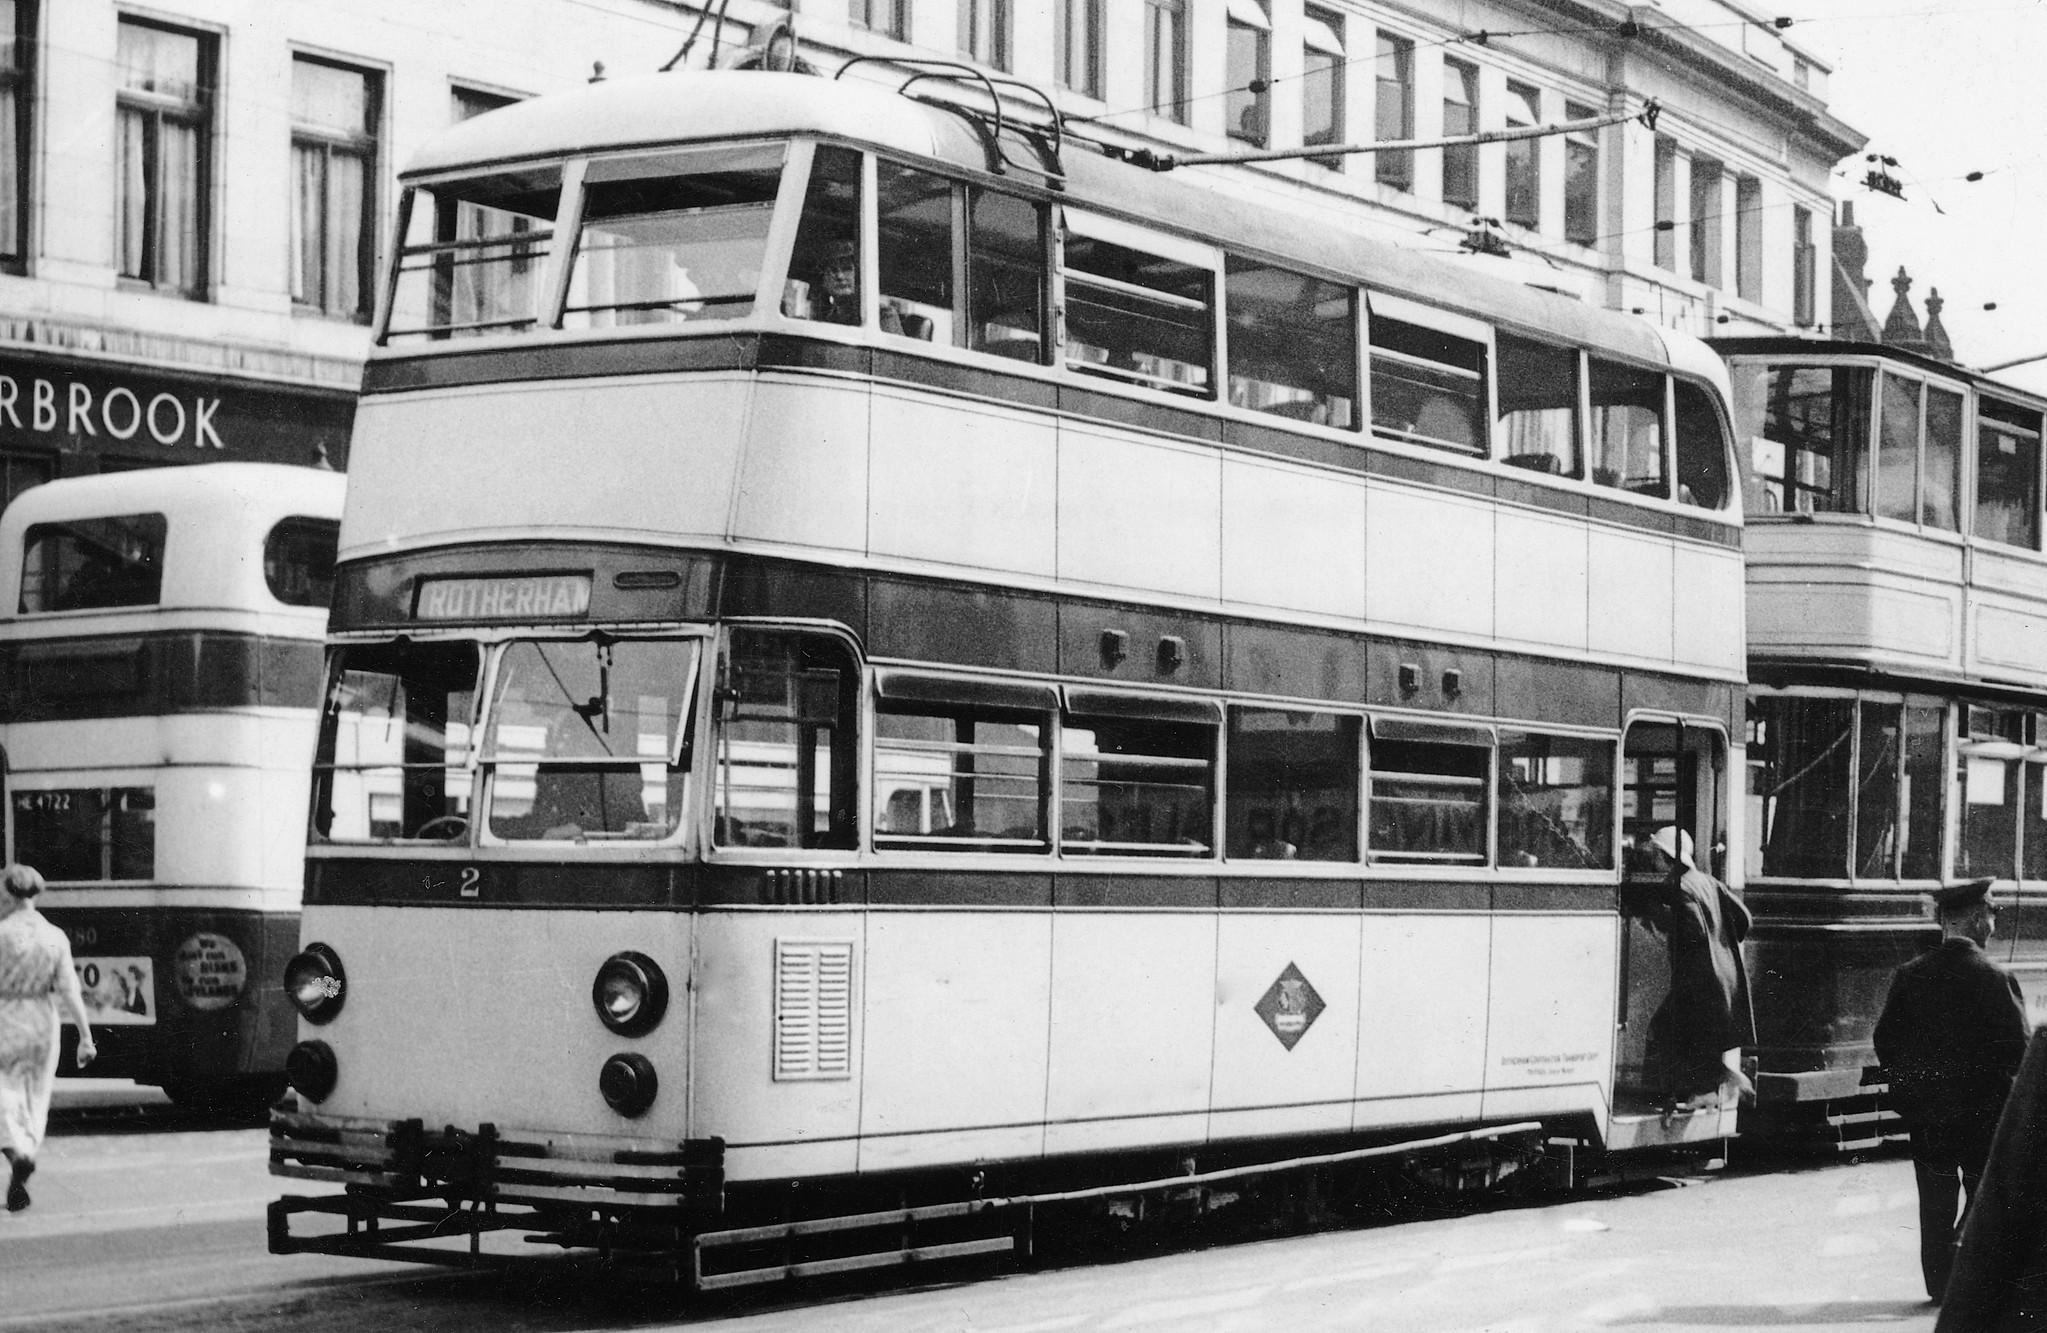 Exposed Tramlines - Sheffield Buses, Trams and Trains